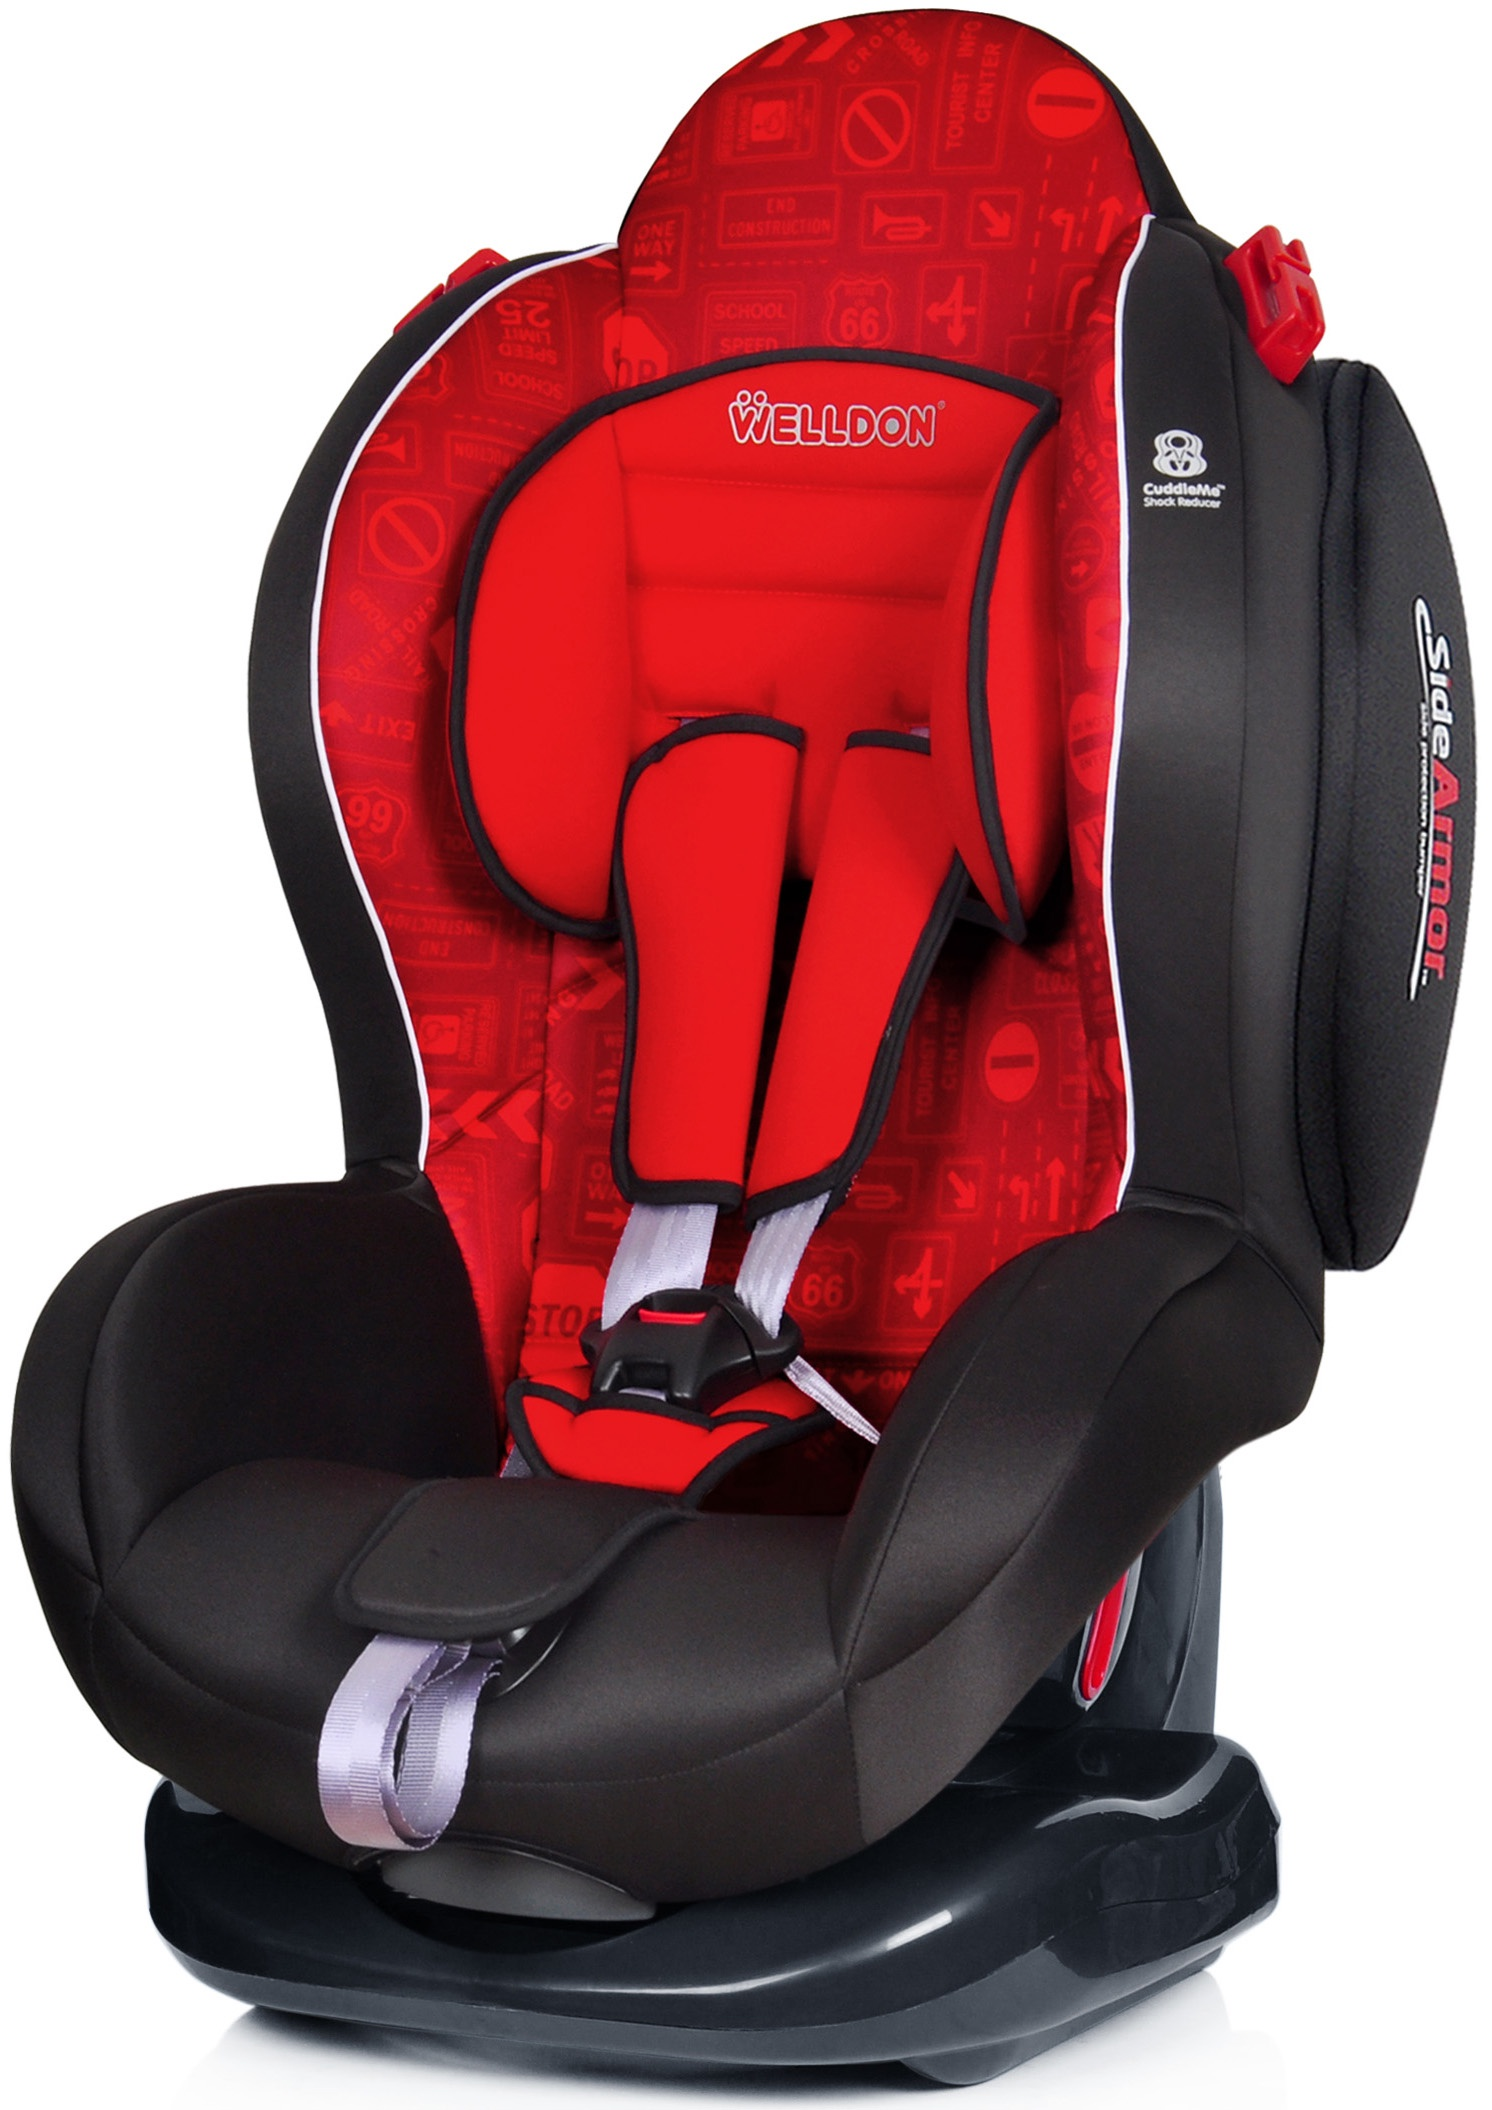 Автокресло Welldon Smart Sport (Traffic Sign) автокресло welldon royal baby side armor